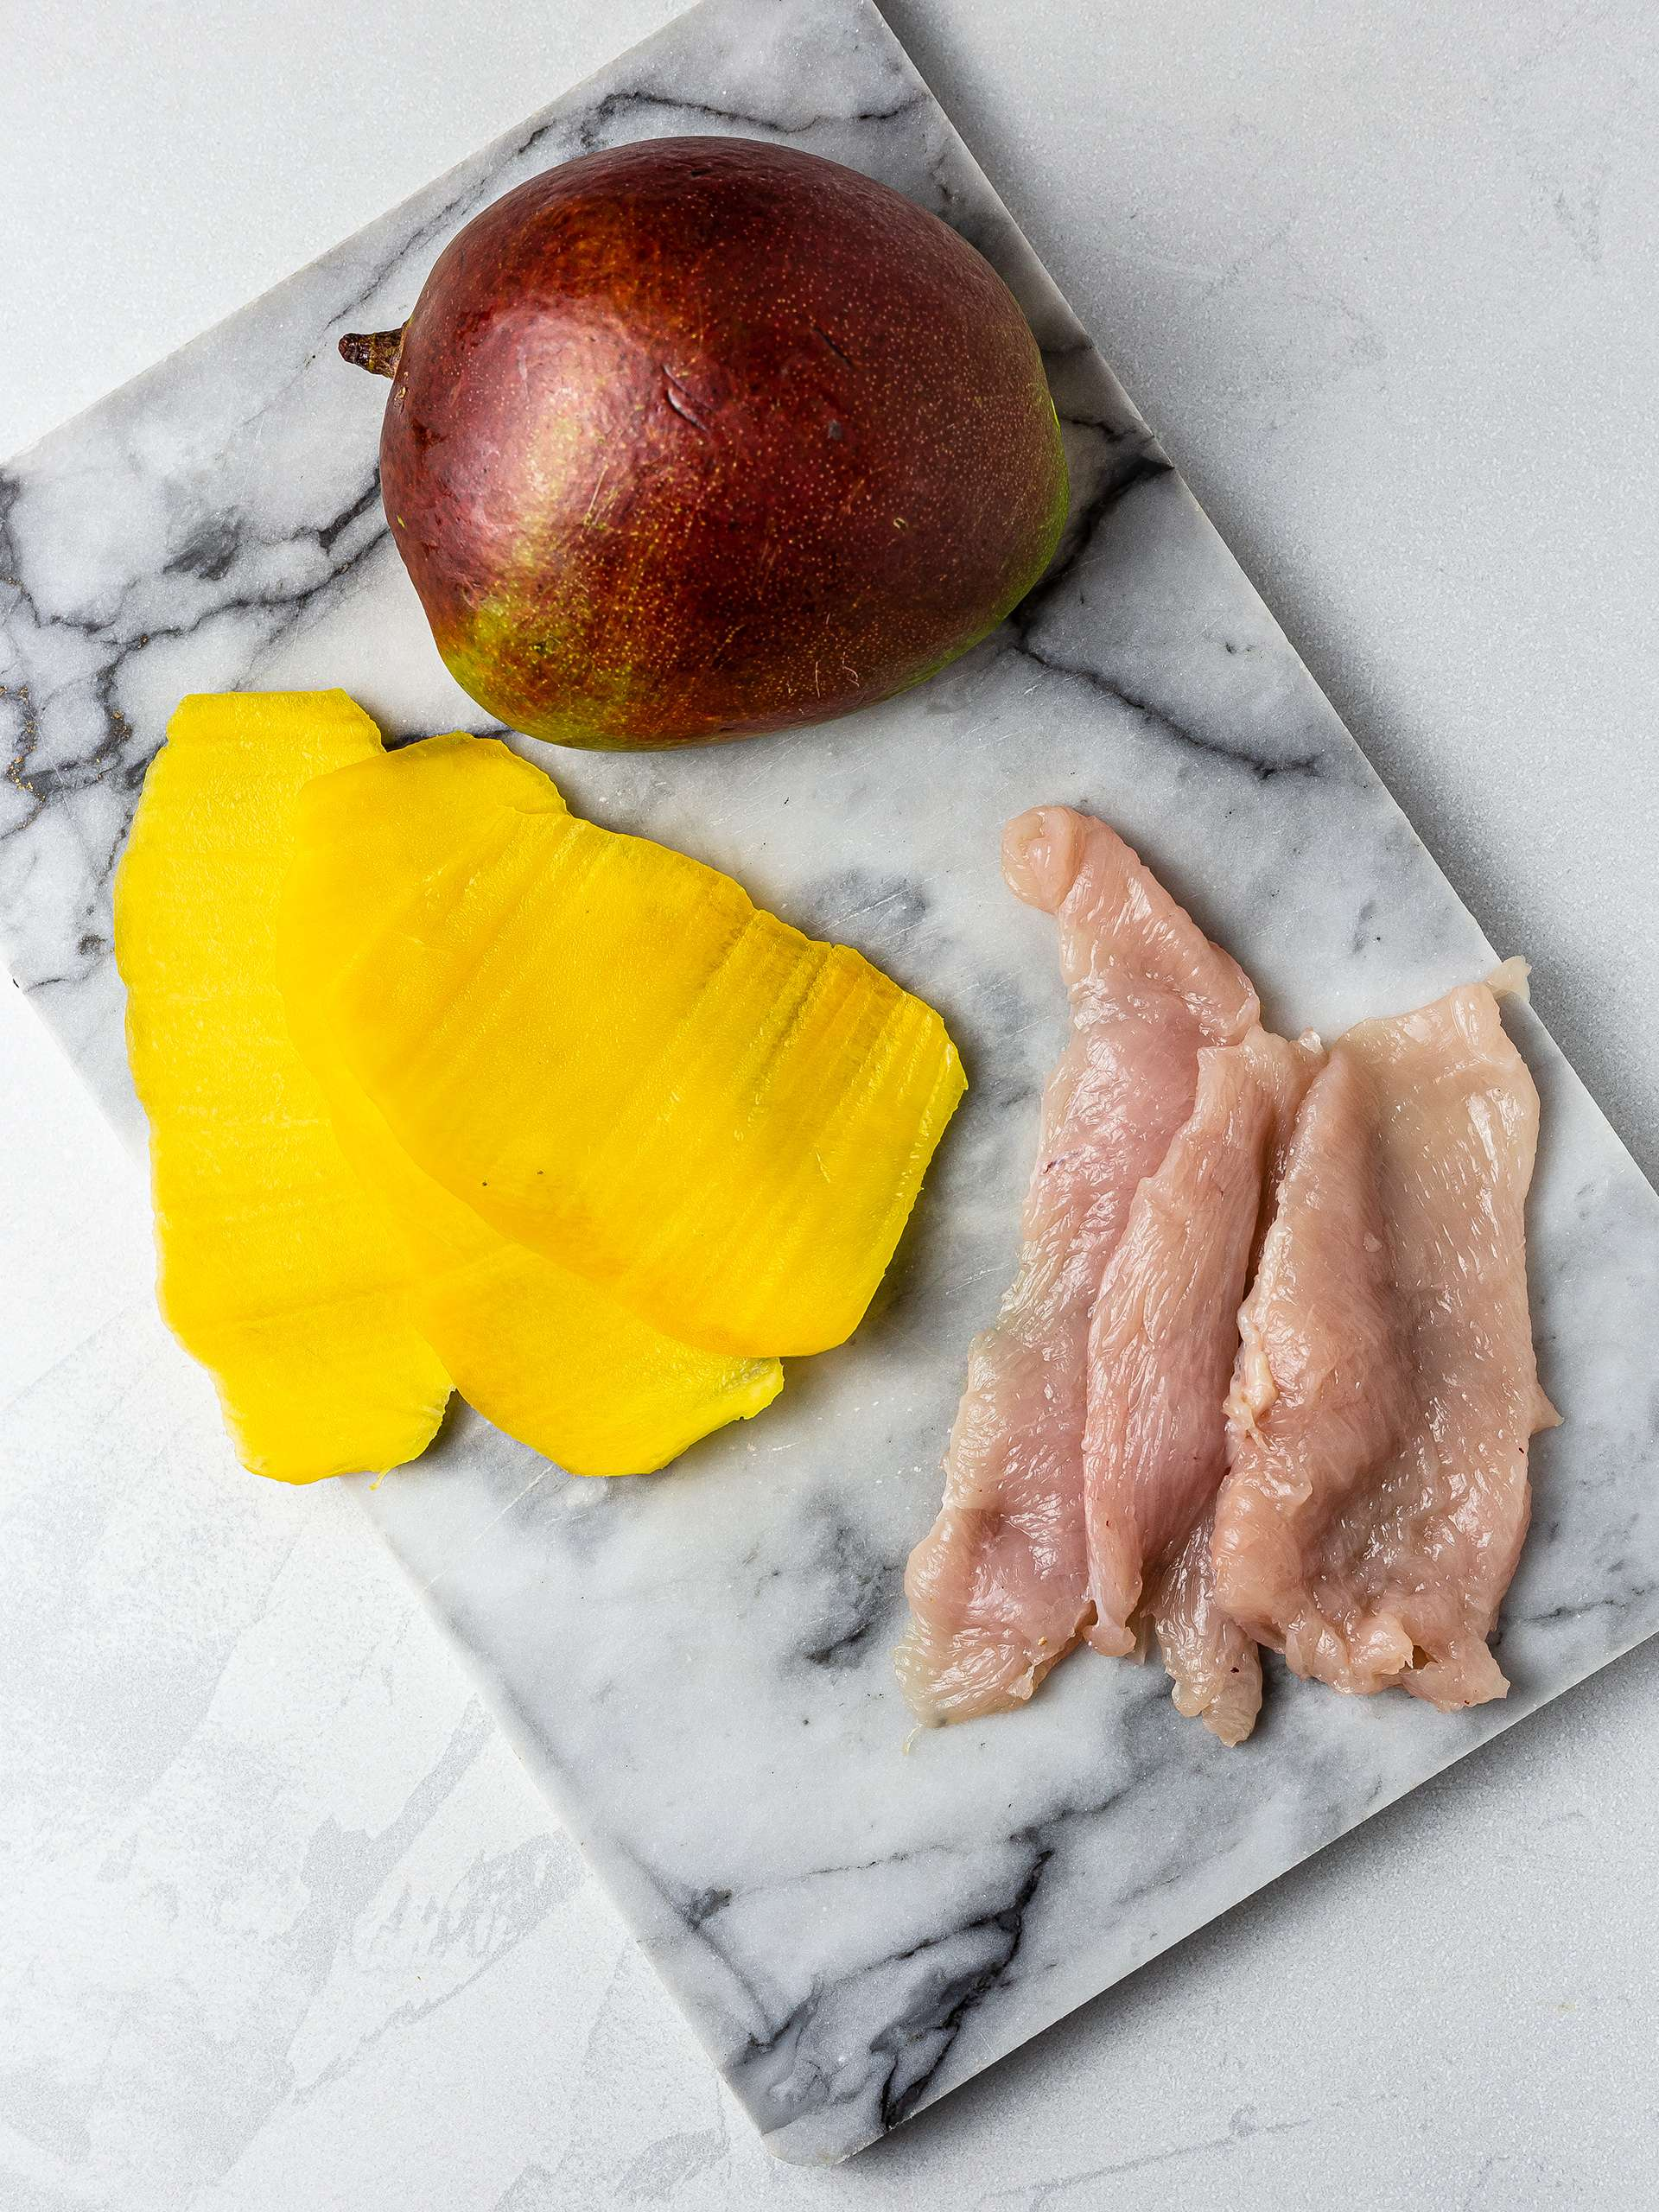 Sliced mango and chicken breast